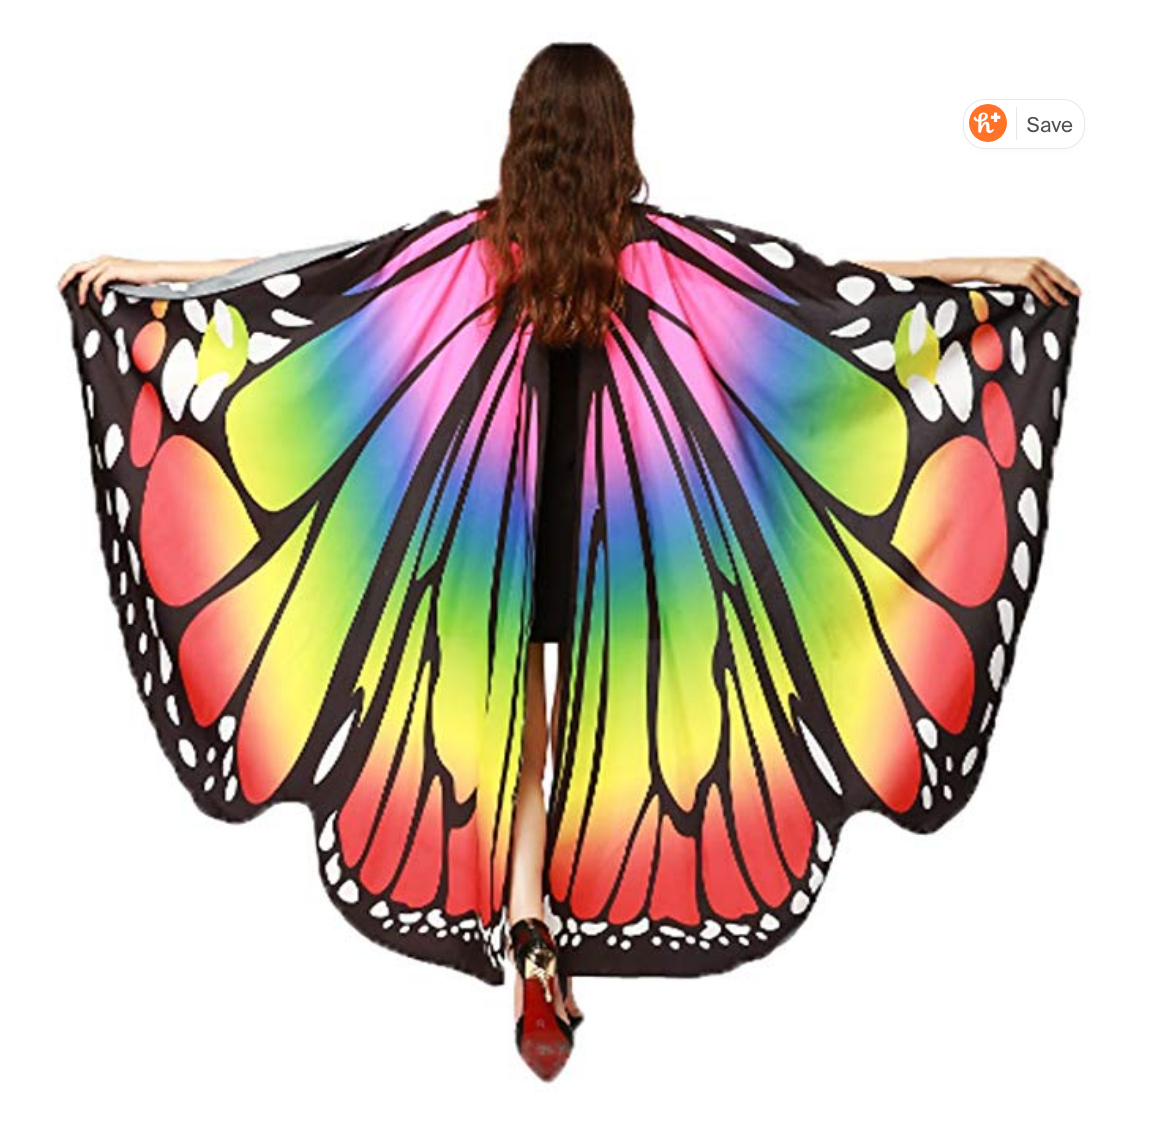 Rainbow Butterfly Wings $10